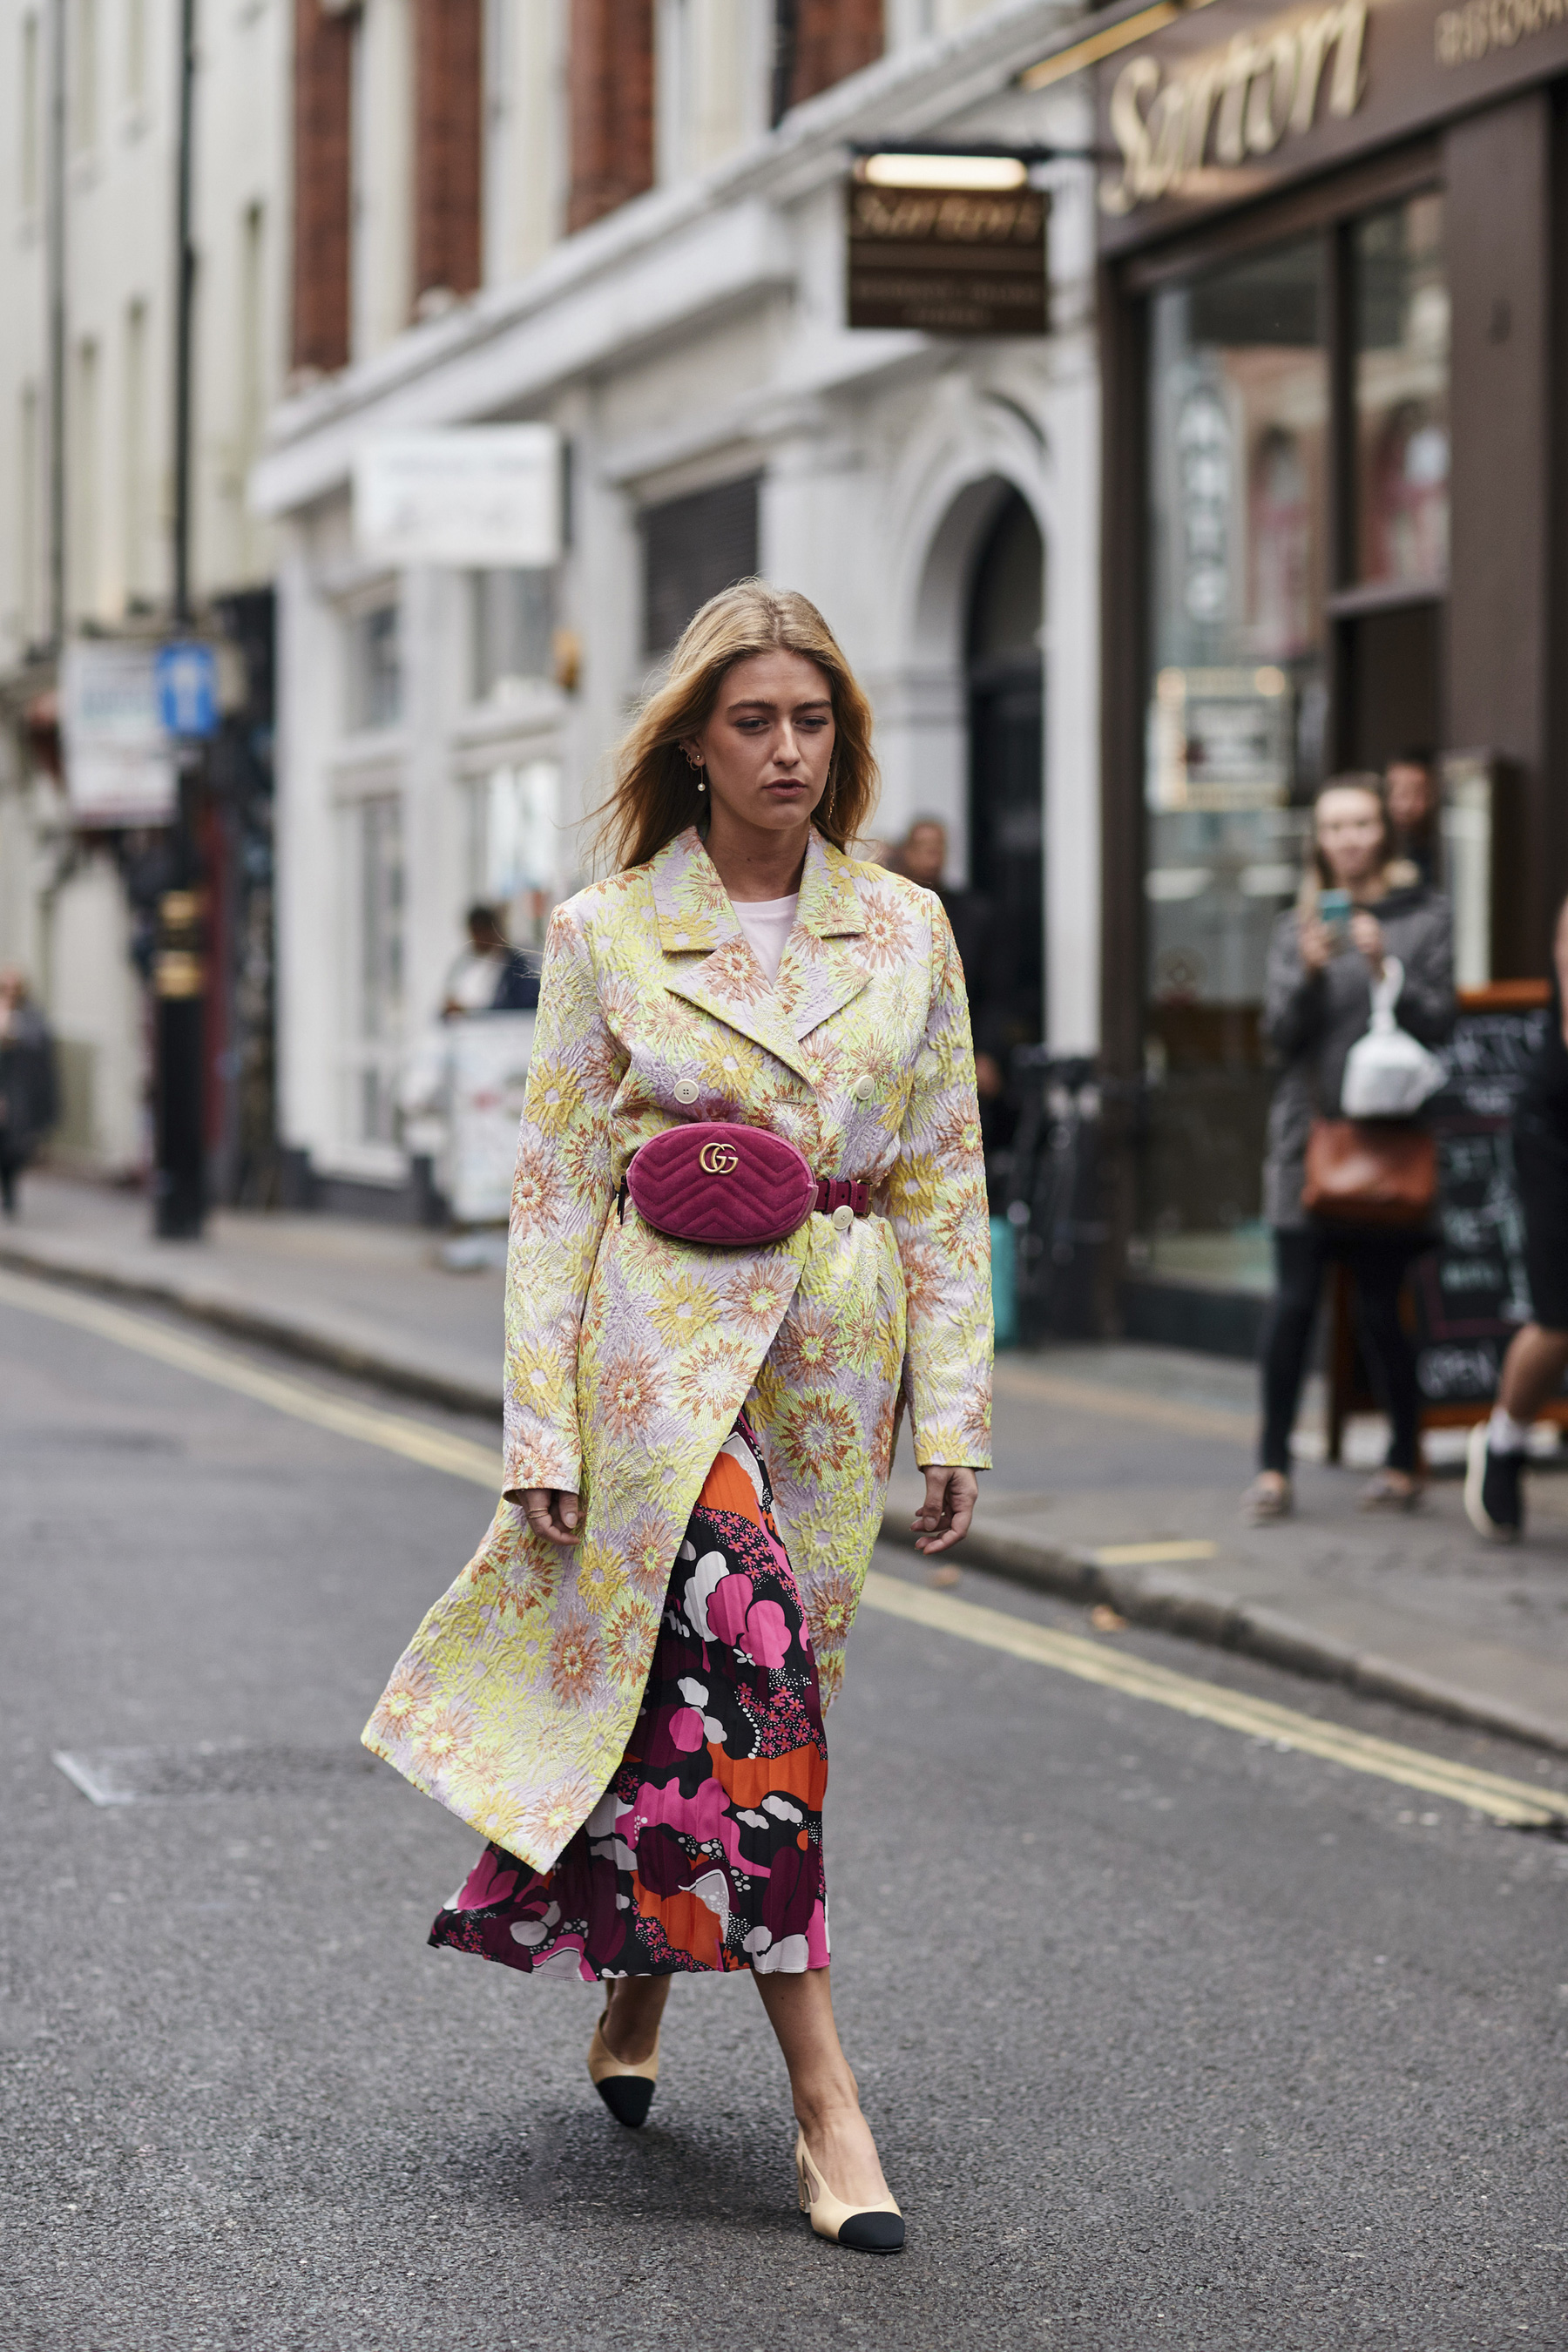 London Fashion Week Street Style Spring 2018 Day 3 Cont.